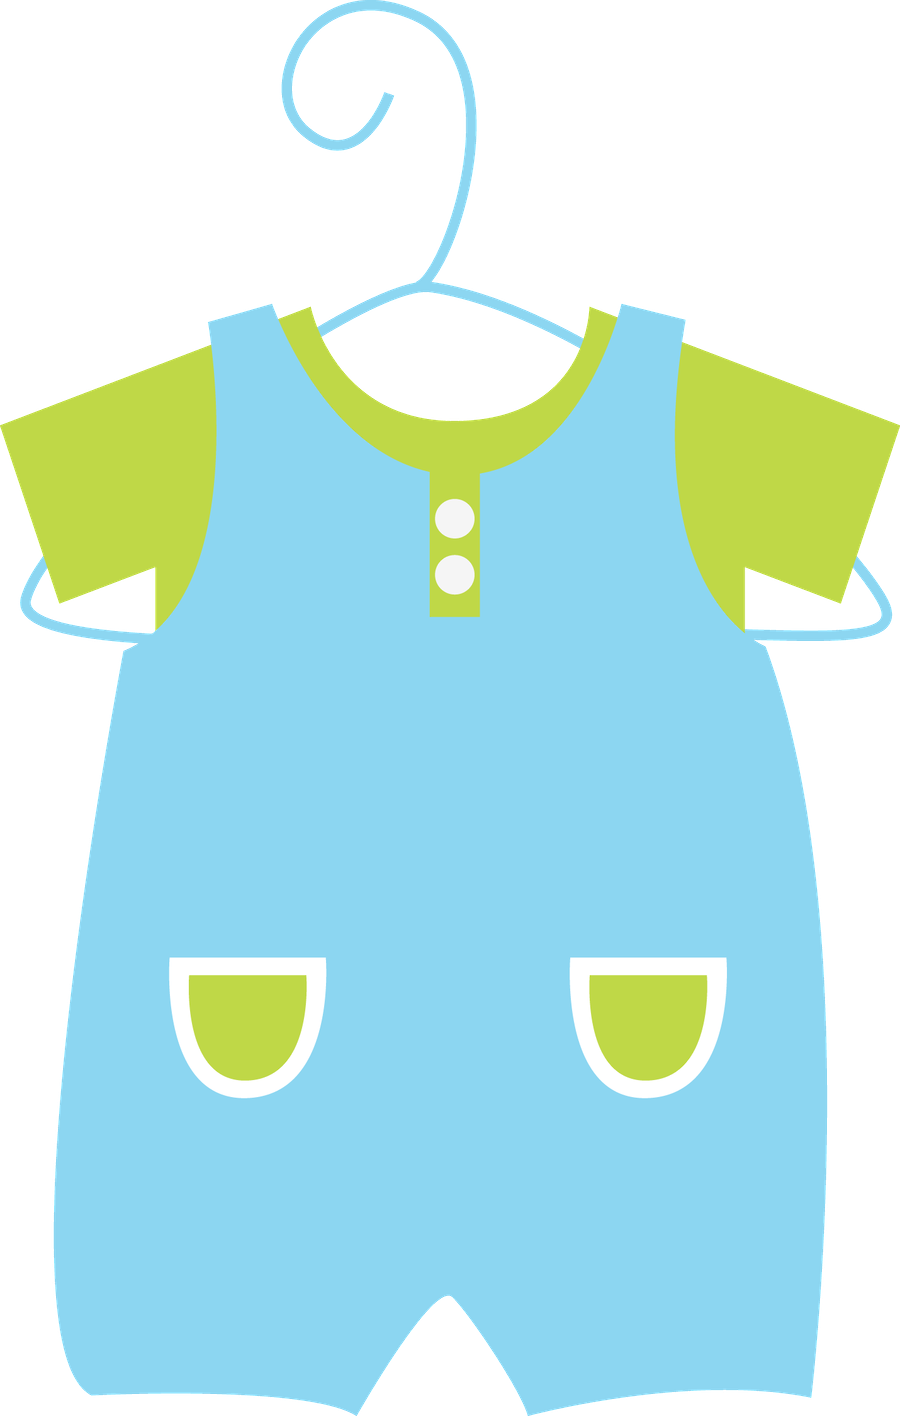 Baby overalls clipart png clip art stock Baby Clothes Clipart | Free download best Baby Clothes Clipart on ... clip art stock